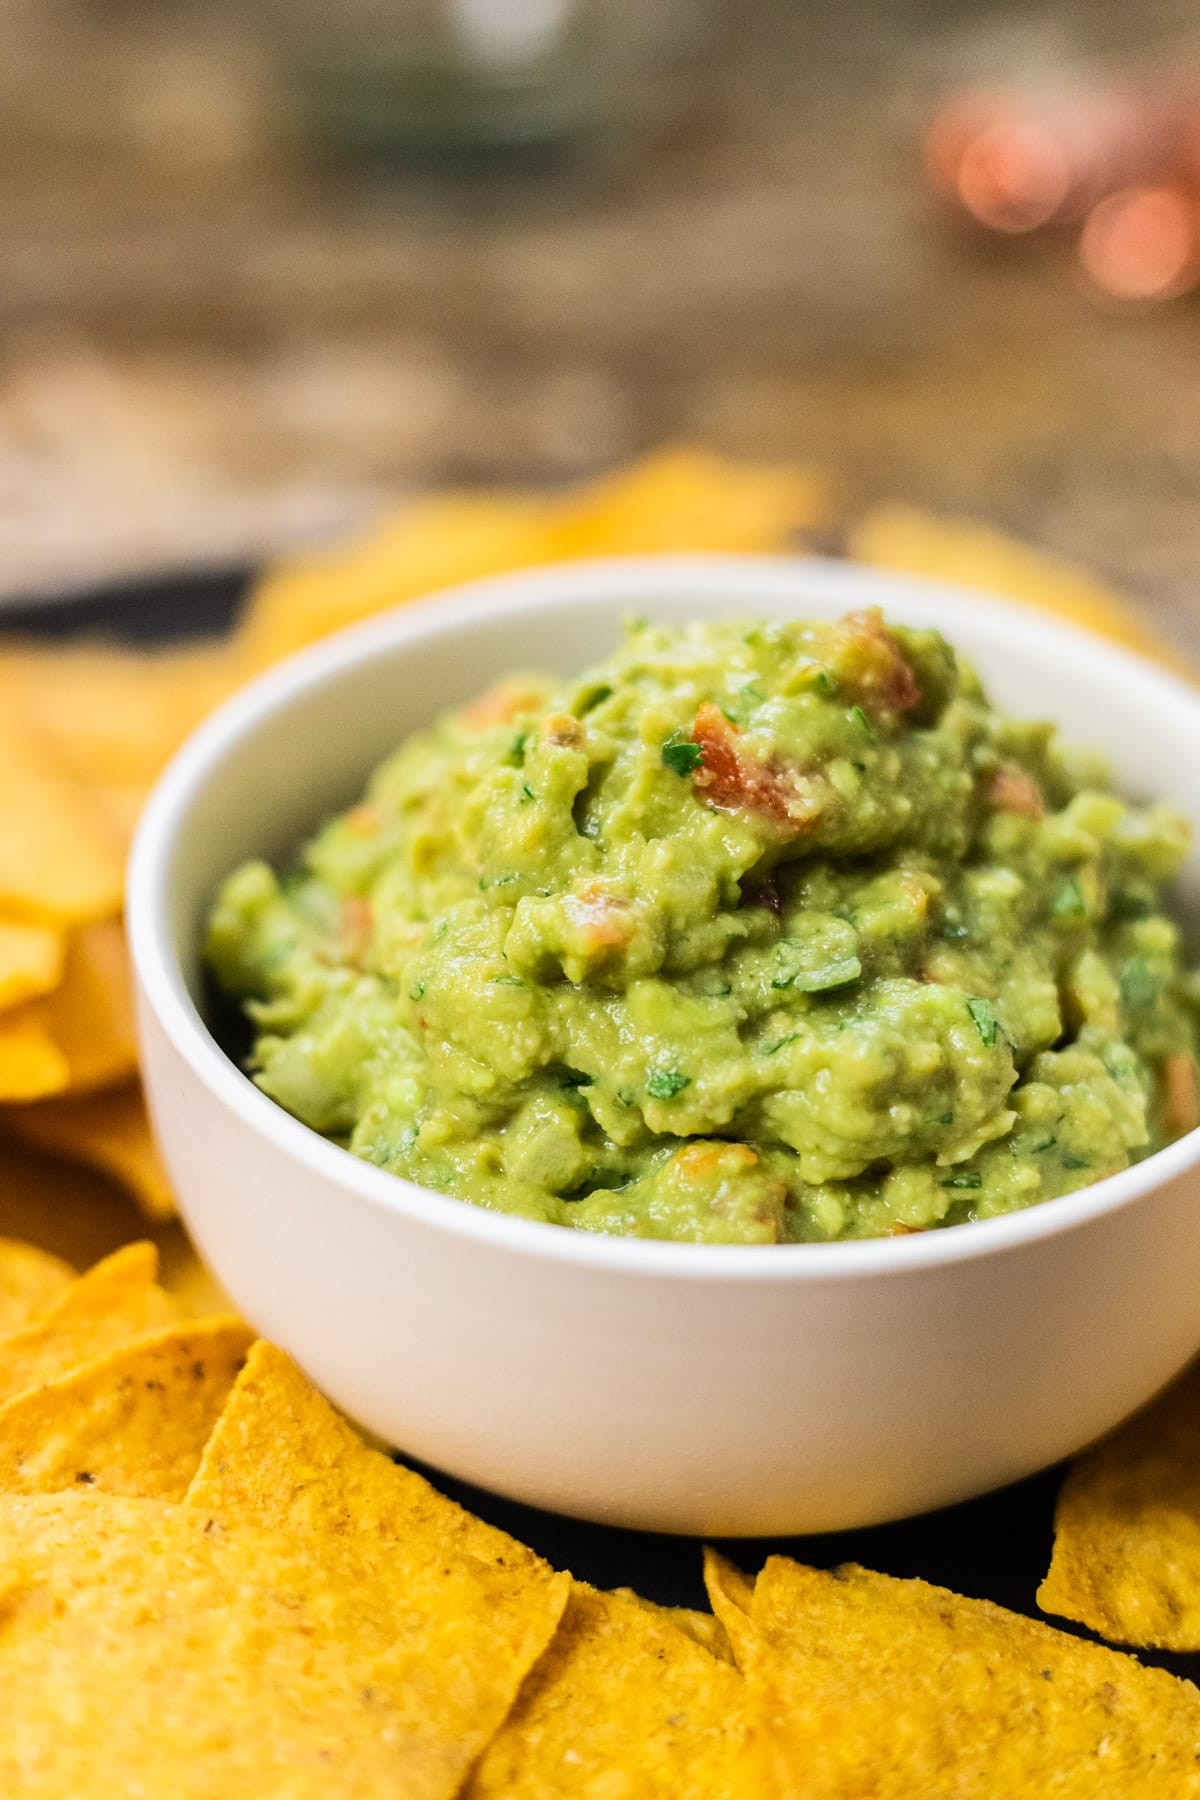 A side view of a bowl of guacamole surrounded by tortilla chips.